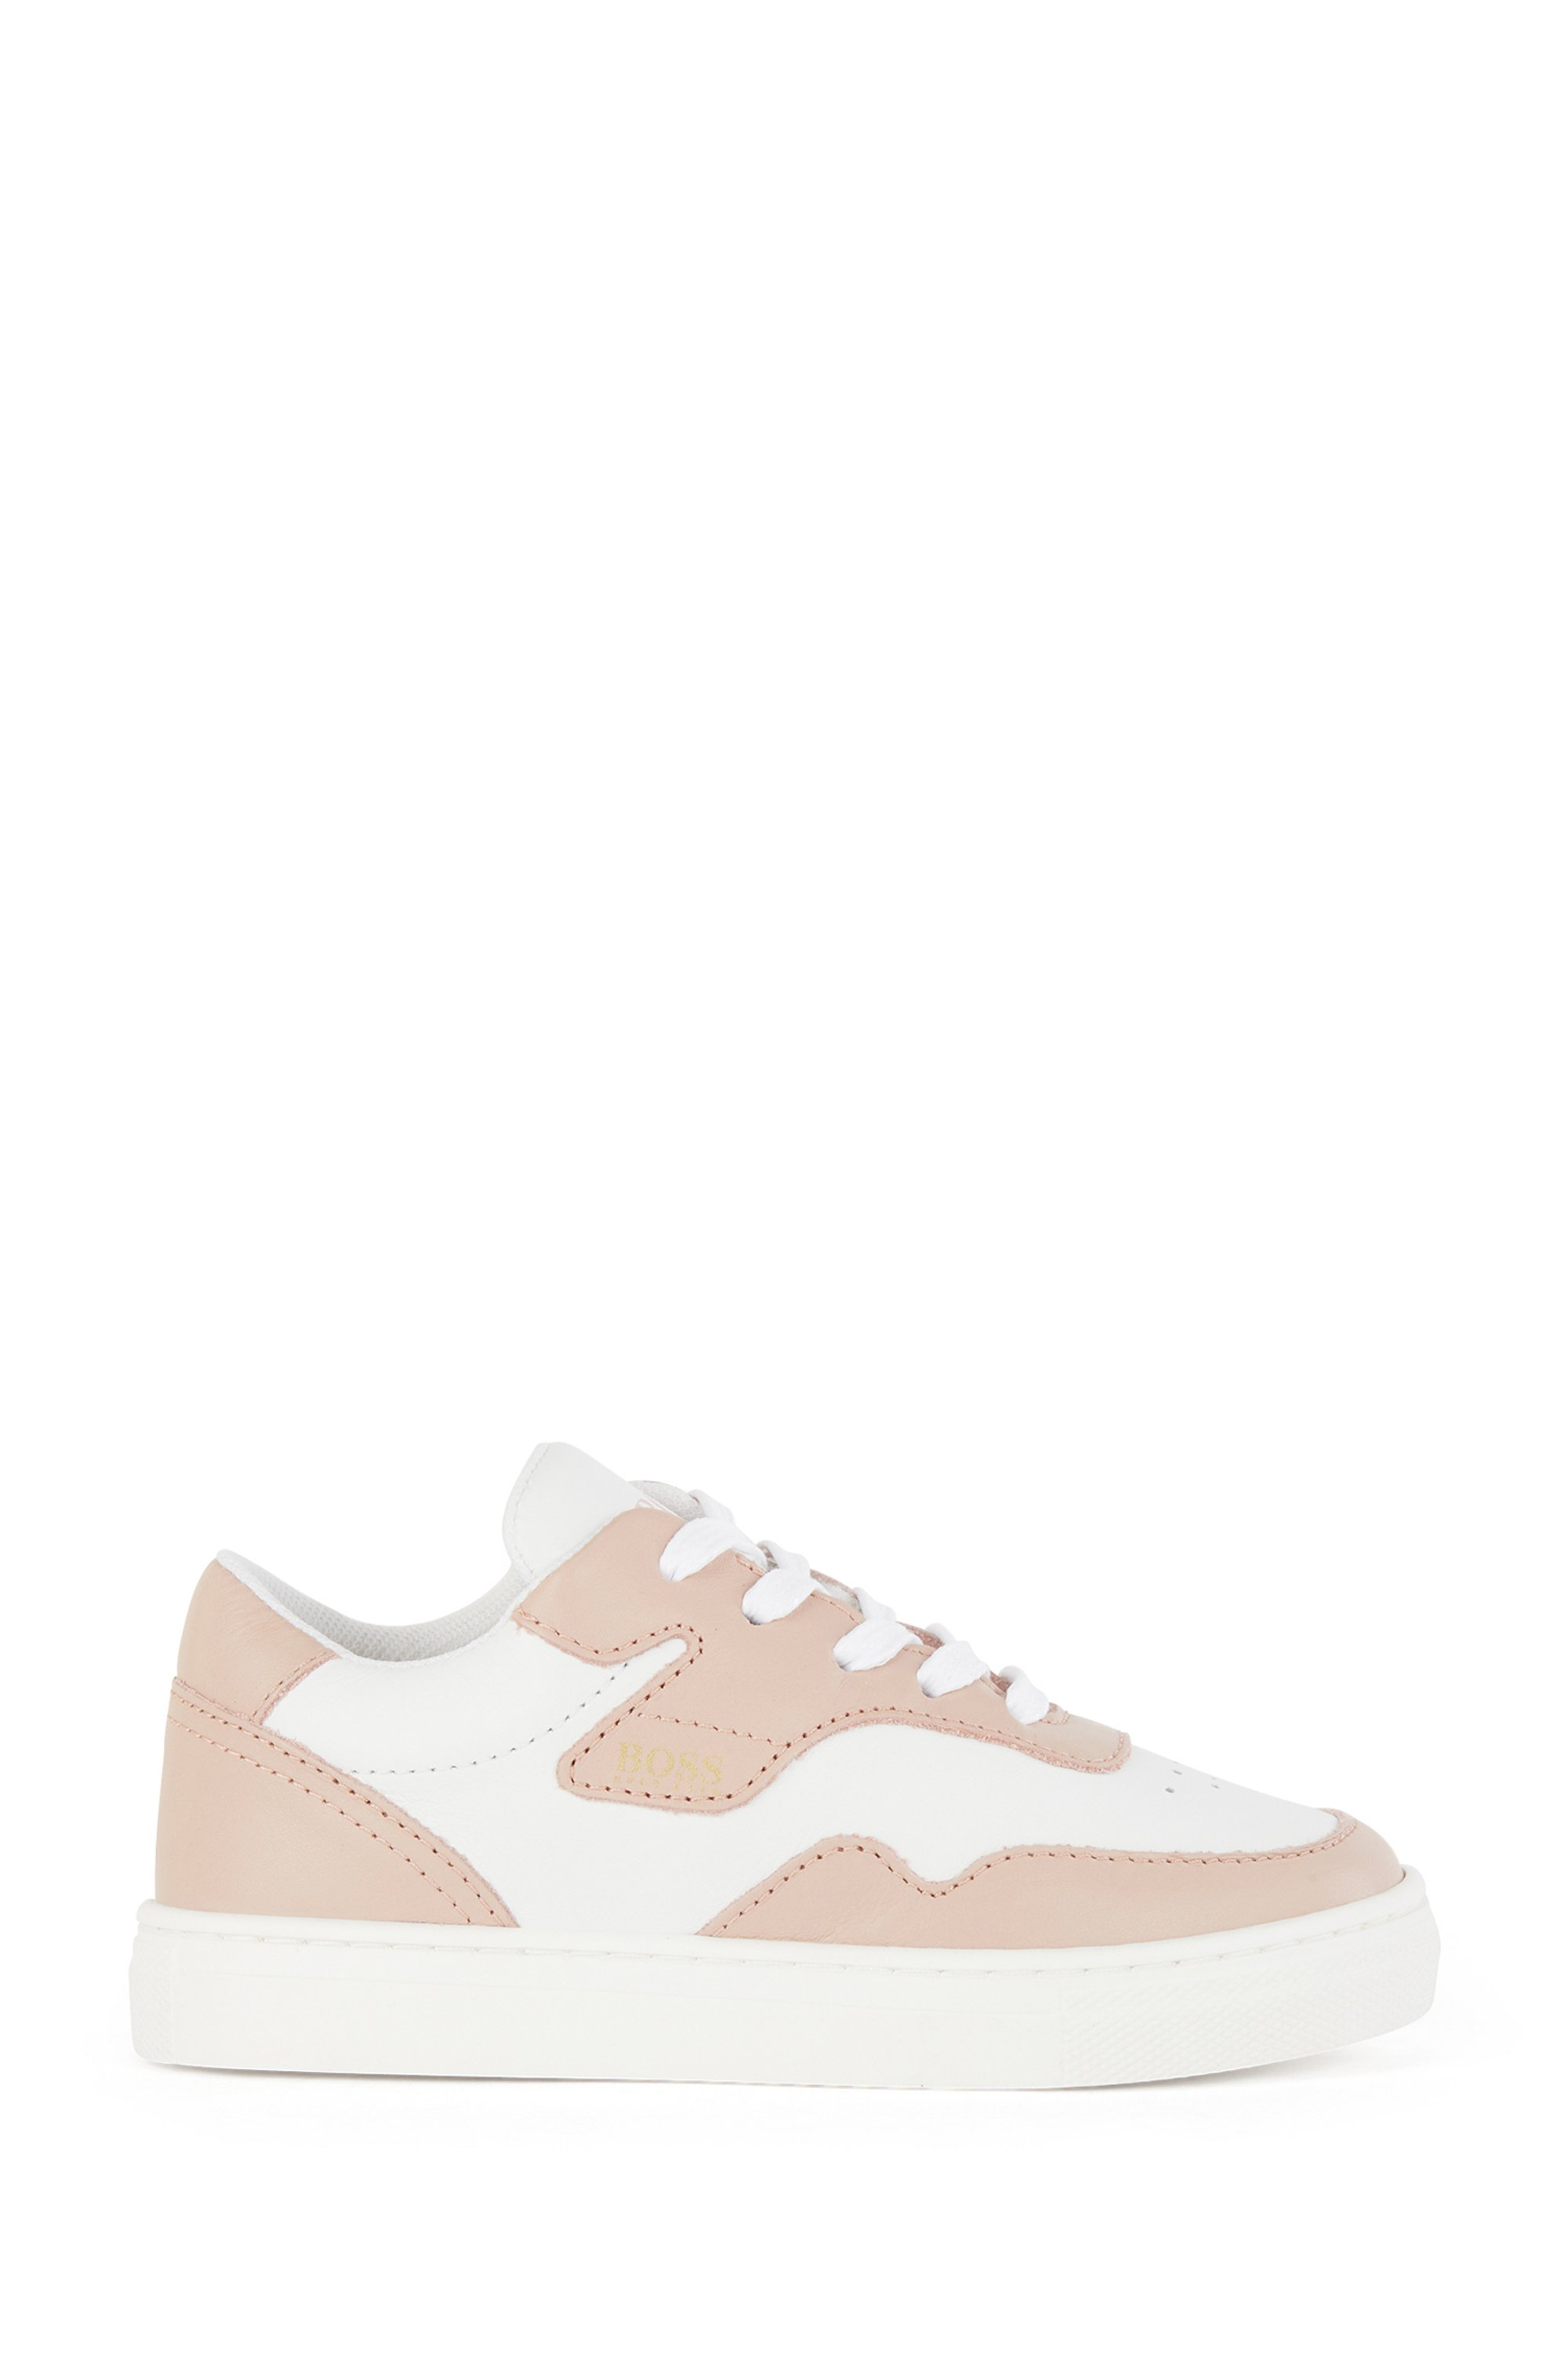 Kids' low-top trainers in two-toned leather